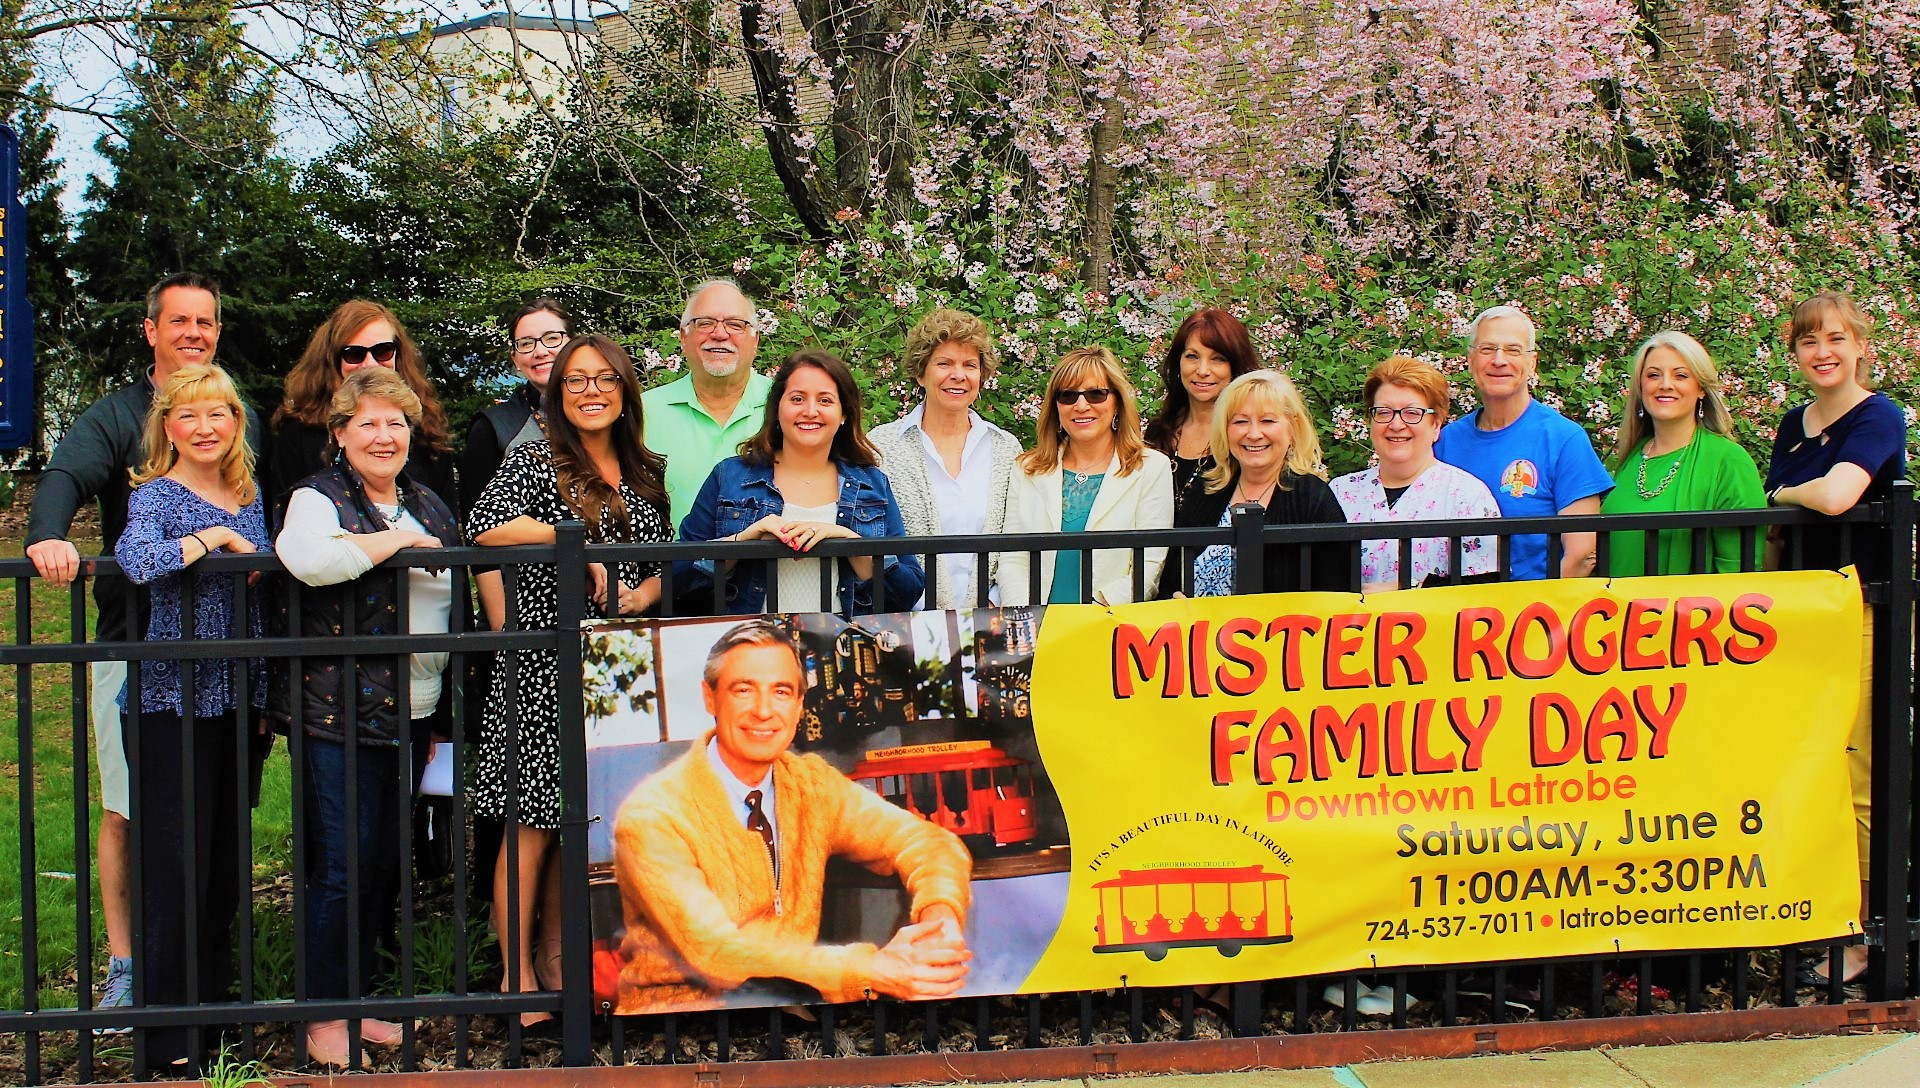 Won't You Be Our Neighbor?   Mister Rogers Family Day Saturday, June 8, 2019